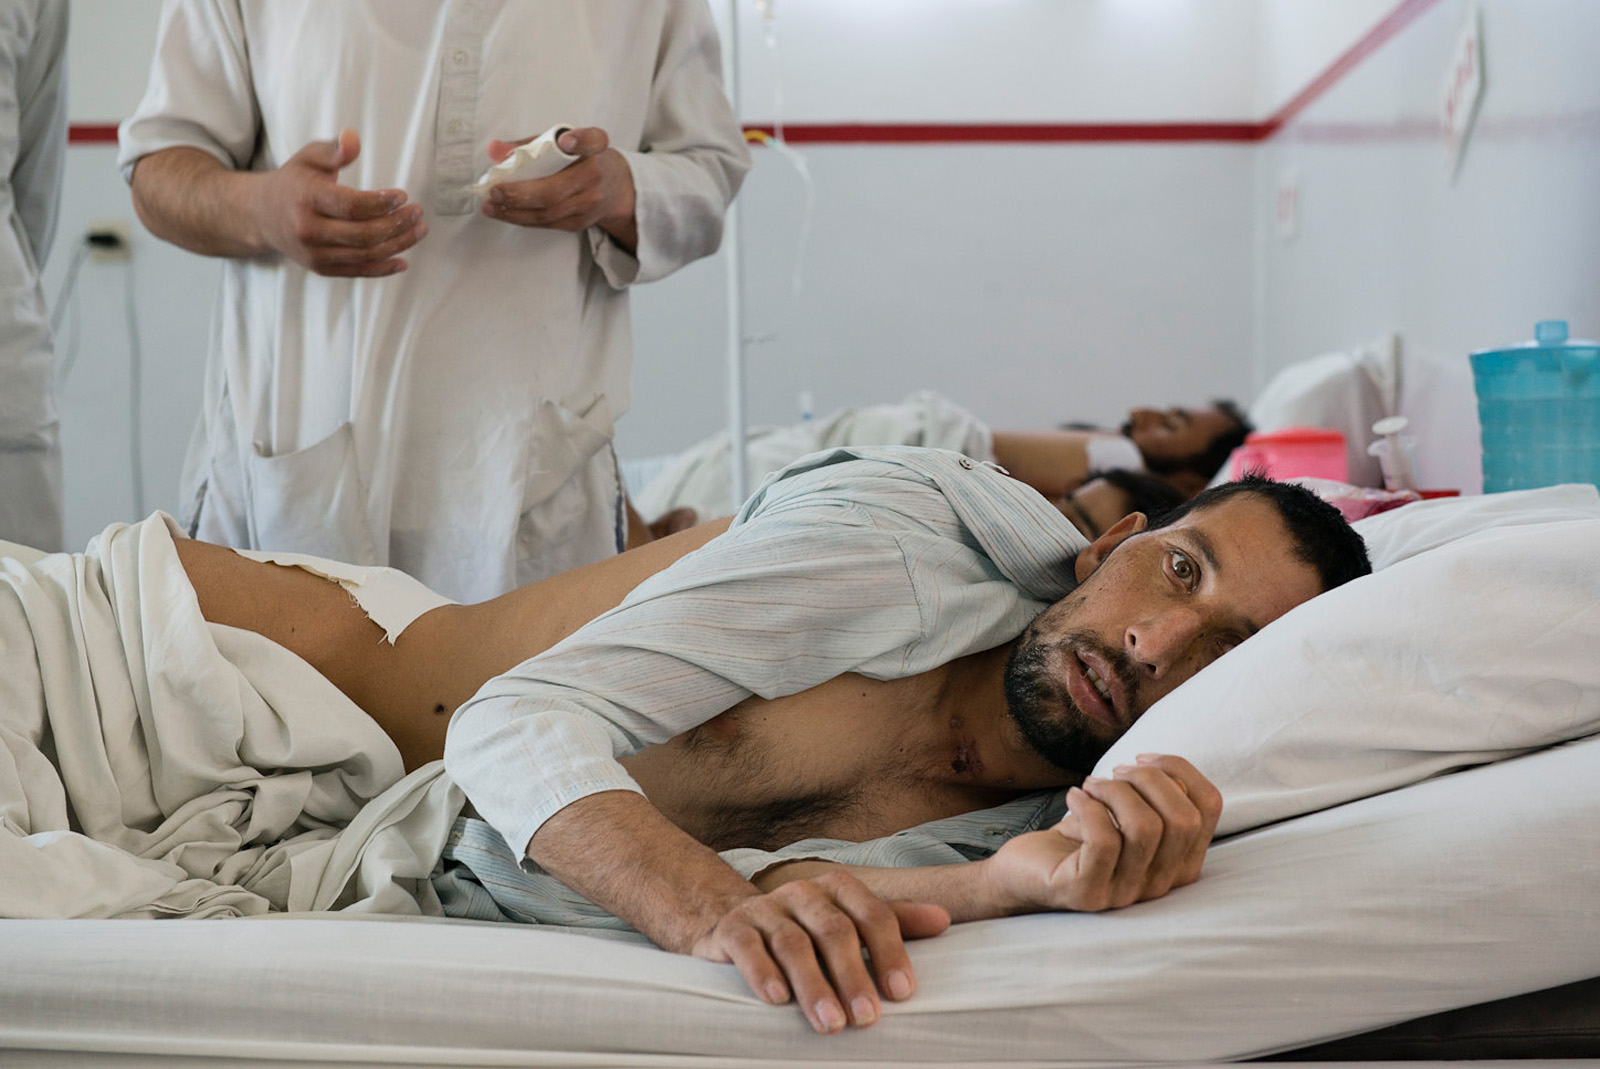 A 23 year old police officer, unable to speak from a severe injury to his jaw caused by shrapnel during the fighting against Taliban, lays in his bed at the Italian Emergency Hospital, while nurses treat his wounds on his back. Kabul, Afghanistan, May 25, 2015.